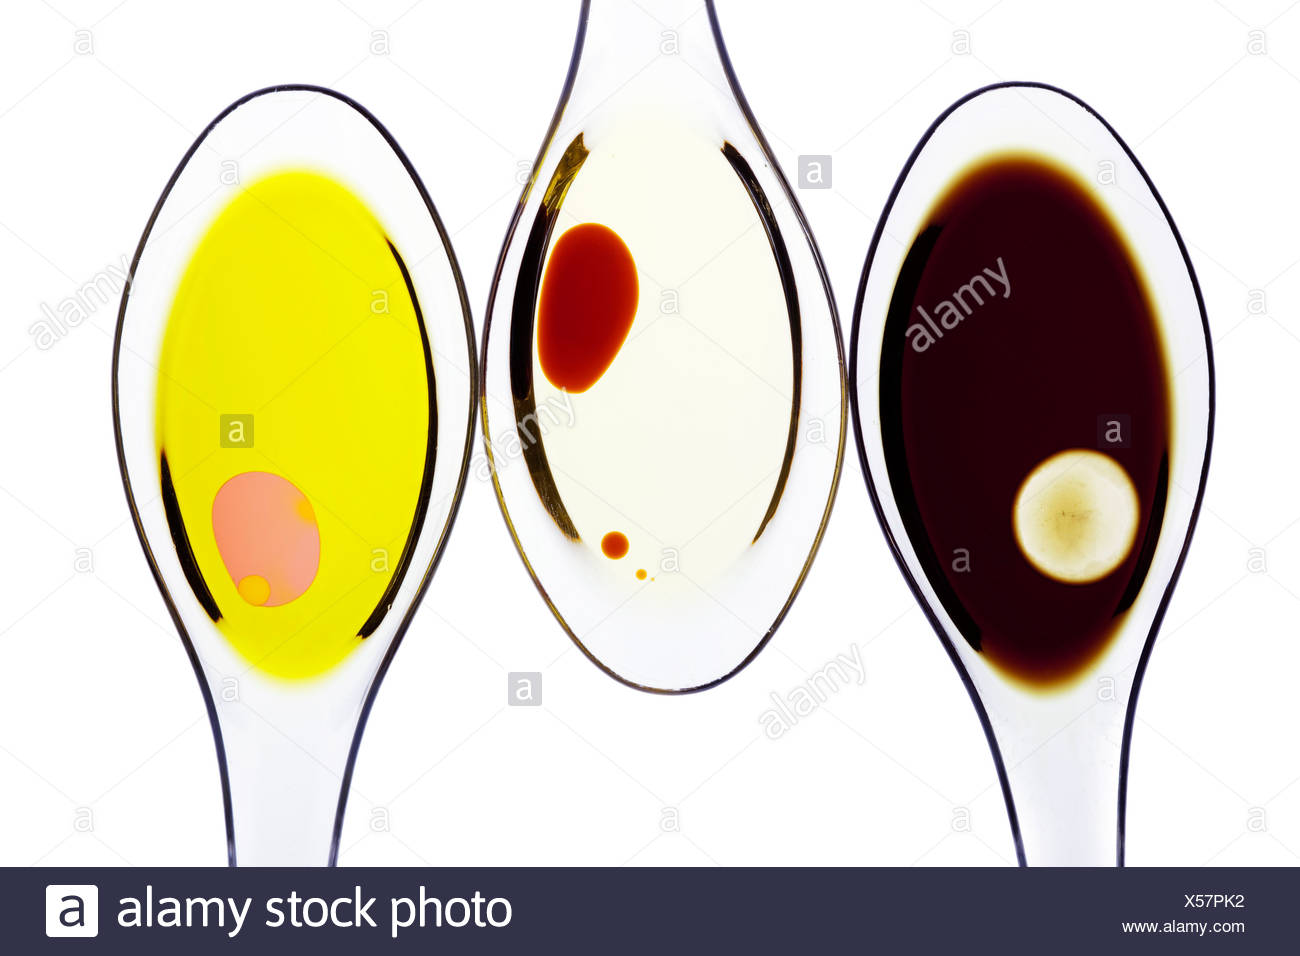 Different kinds of oil, core oil, pistachio oil, olive oil and vinegar on clear spoons - Stock Image